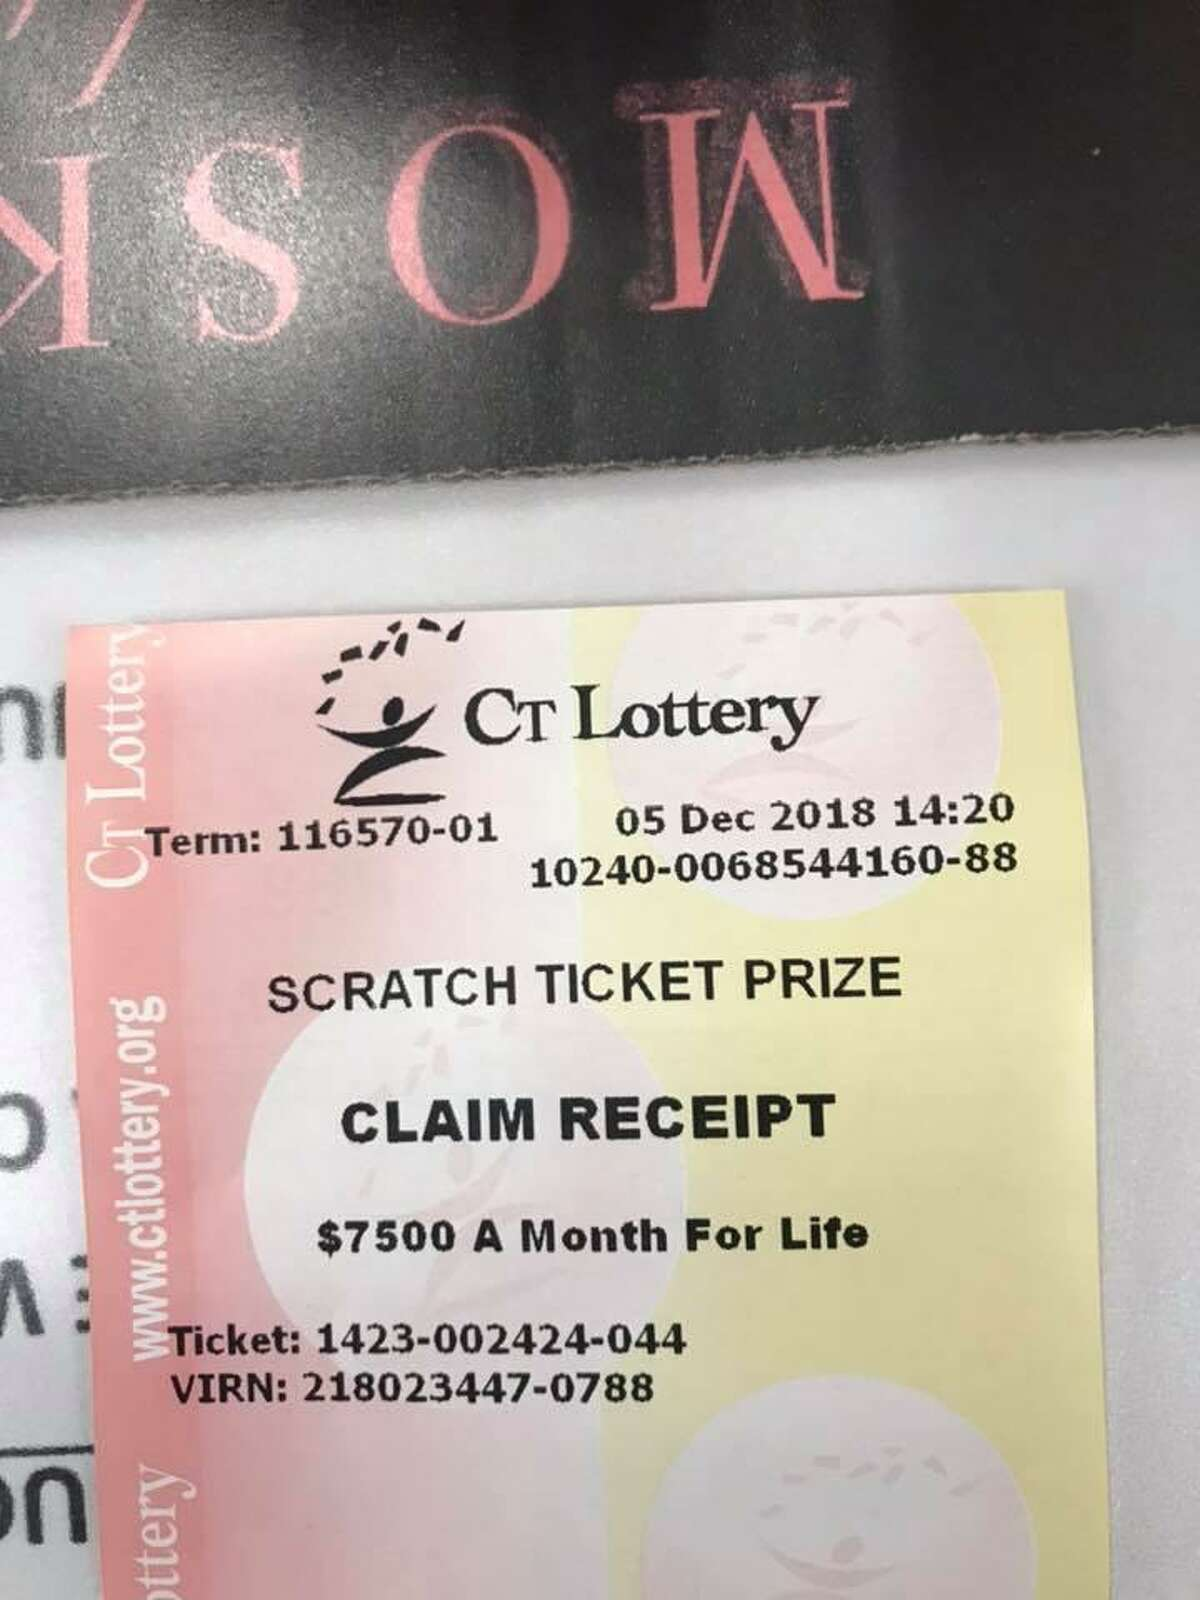 """The Tropical Deli in Danbury wasted no time on its Facebook page letting people know the business sold a winning ticket worth a $1.5 million. It also posted a photo of the Claim Reciept for the prize. """"Play Connecticut Lotto at Tropical Deli where we had a Win For Life Winner!!!!! Someone just won $7,500 a month for life!! Hey, you never know!,"""" it posted."""